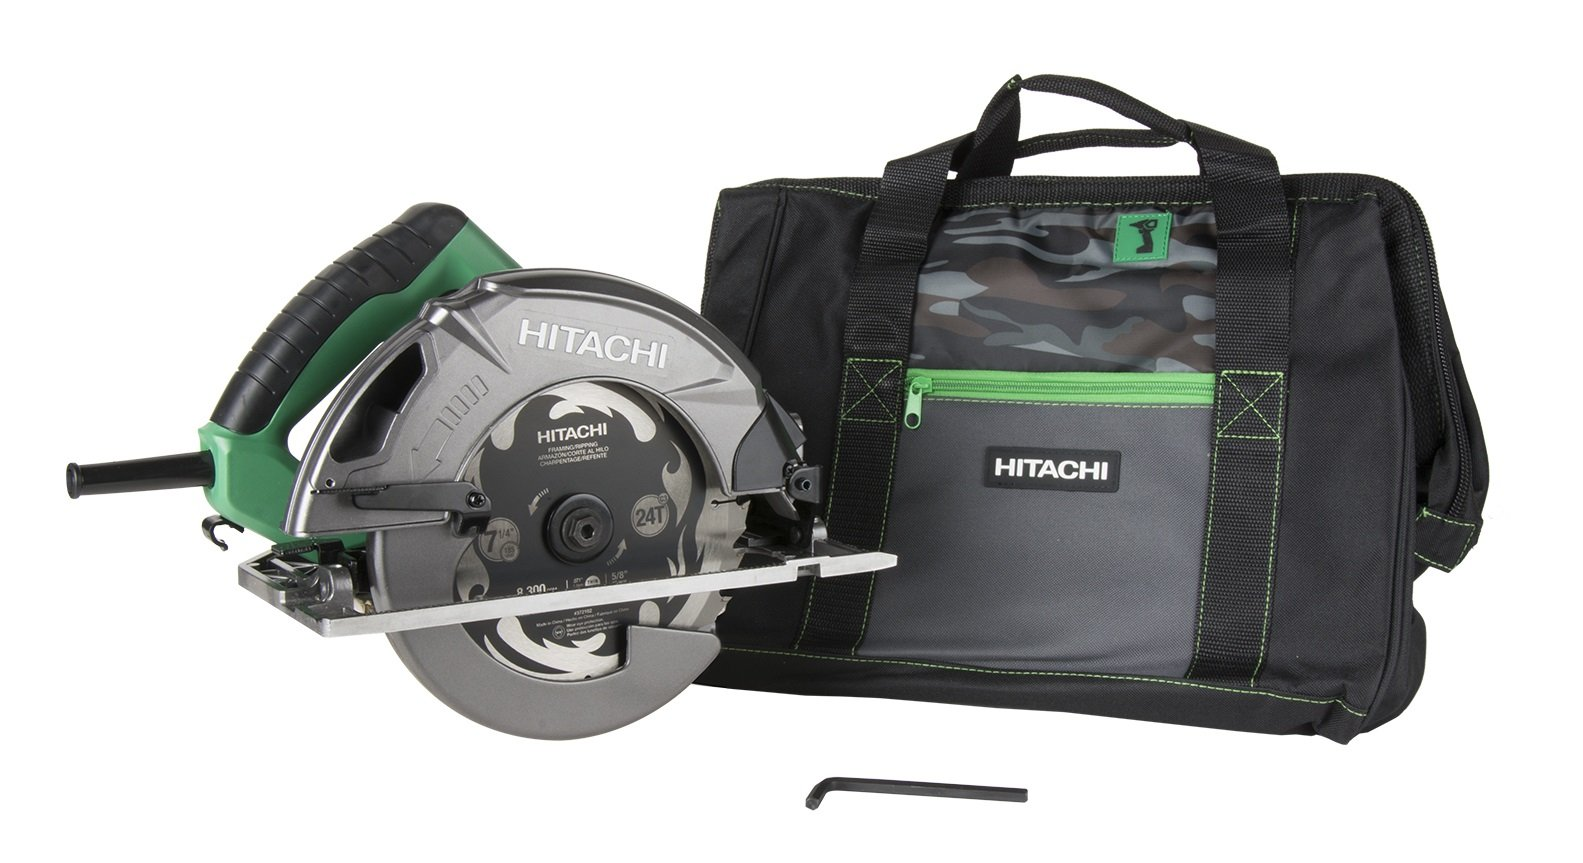 Hitachi C7SB3 15 Amp 7-1/4'' Circular Saw 0-55° Bevel Capacity, Blower Function, & Aluminum Die Cast Base by Hitachi